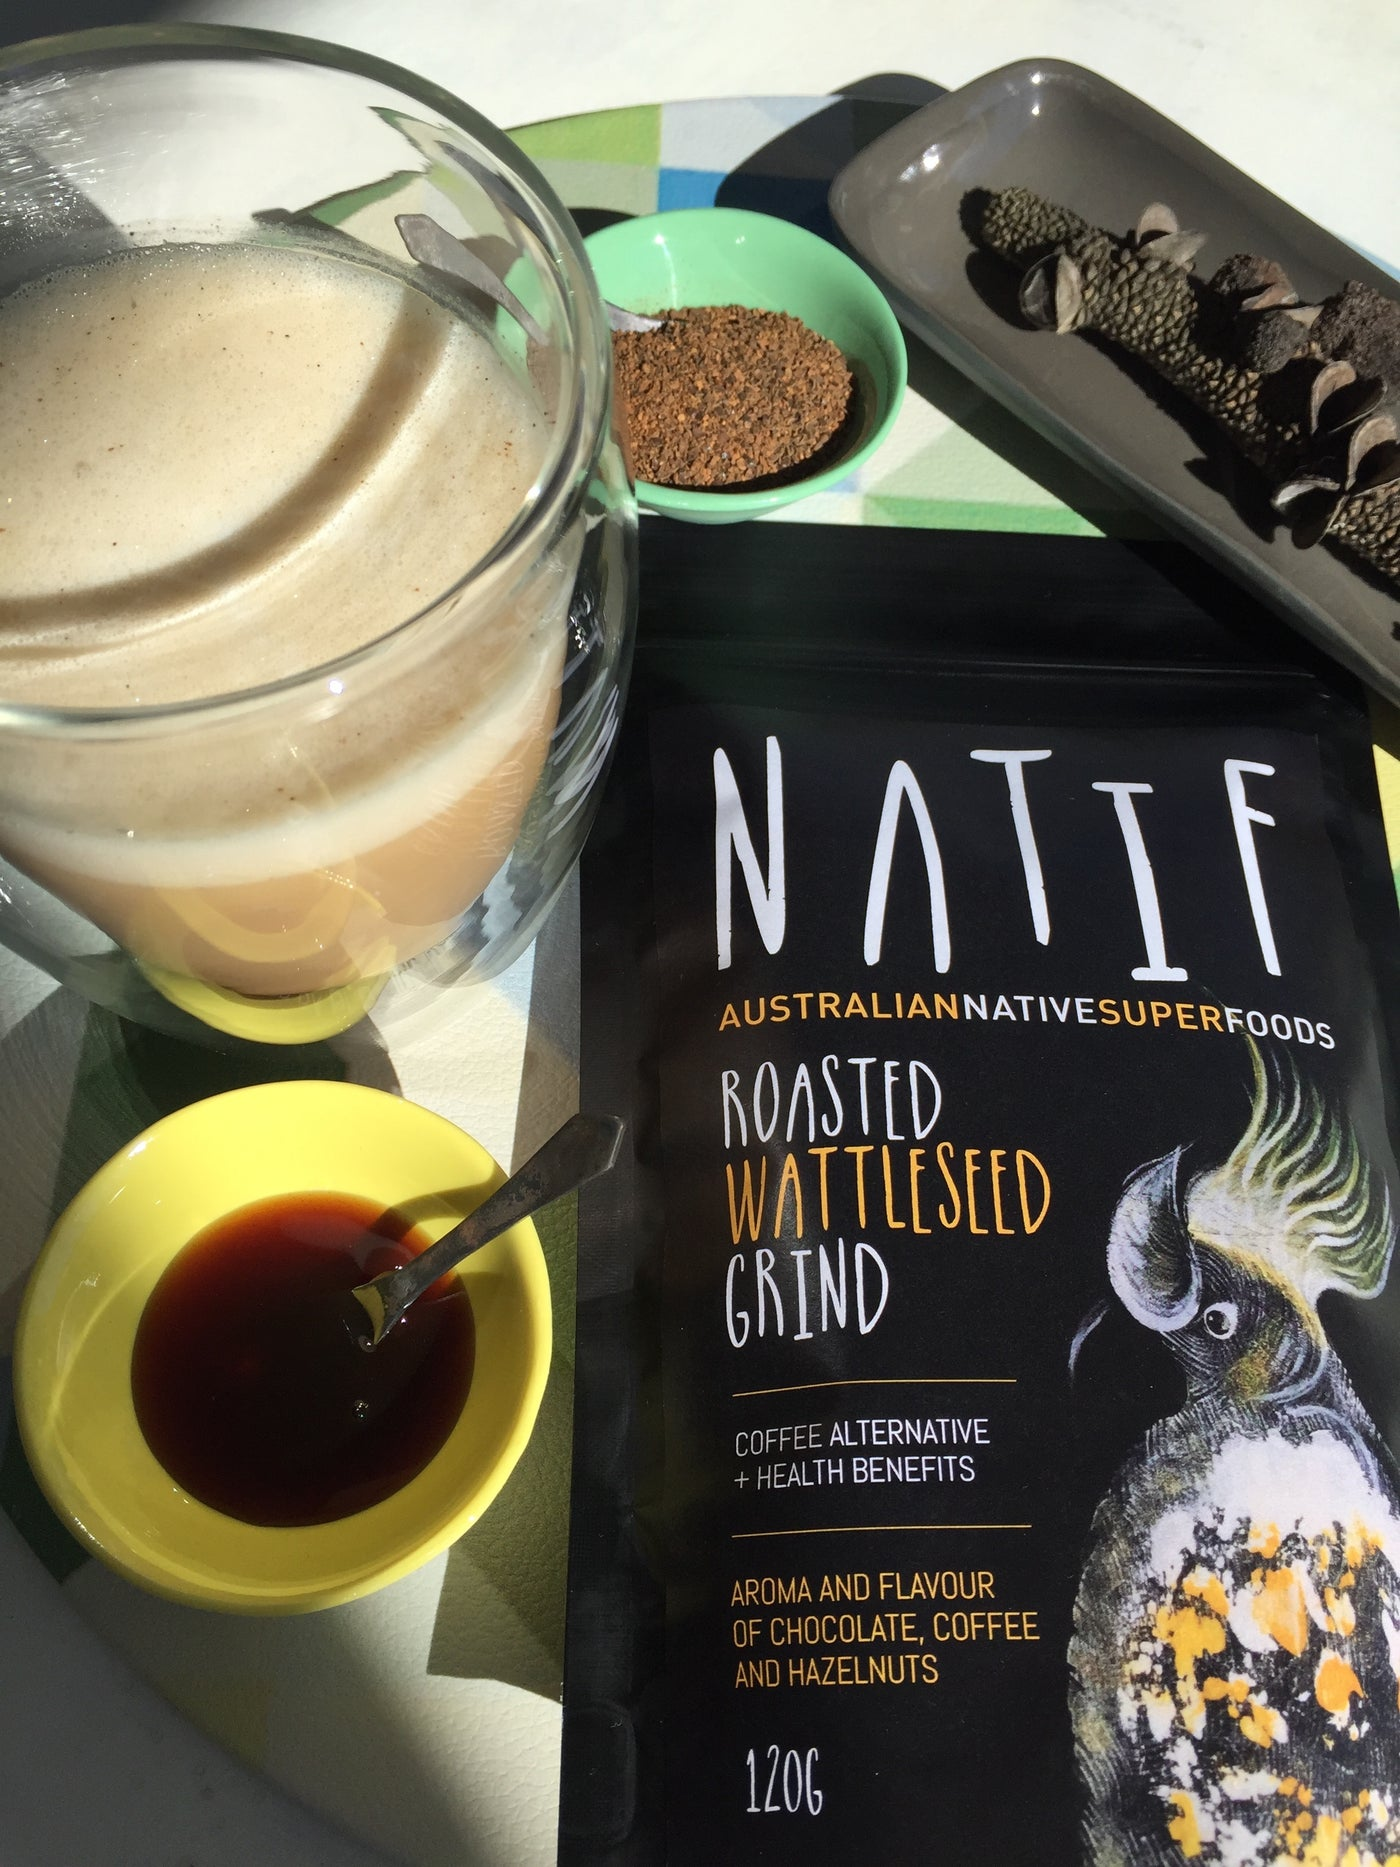 The Melbourne Wattle Latte is here